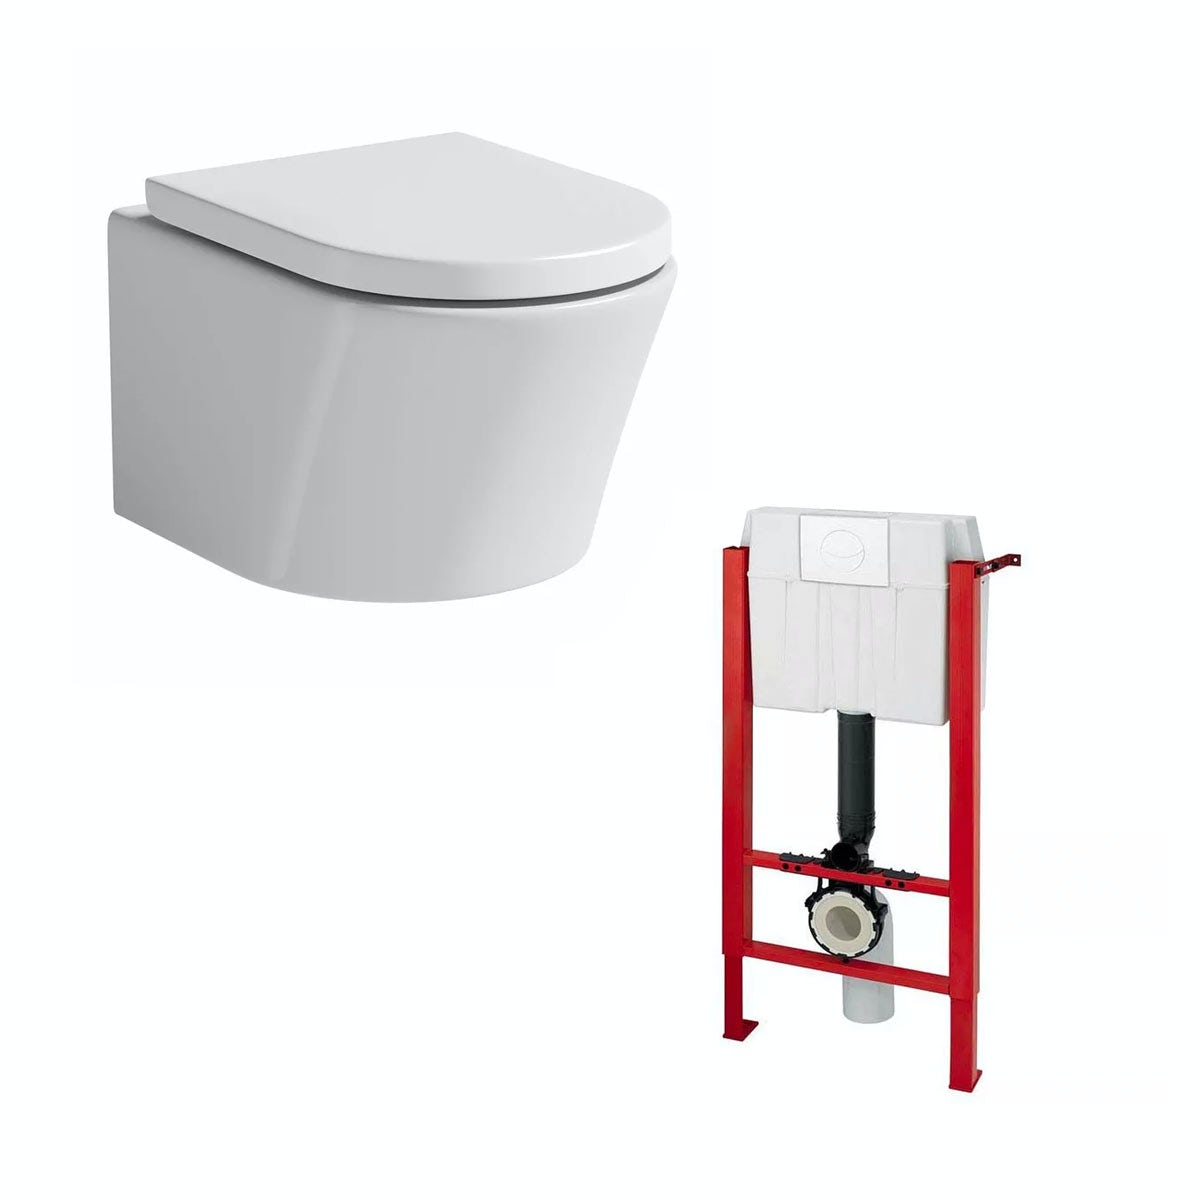 mode arte wall hung toilet with luxury toilet seat and wall hanging frame - Wall Hung Toilet